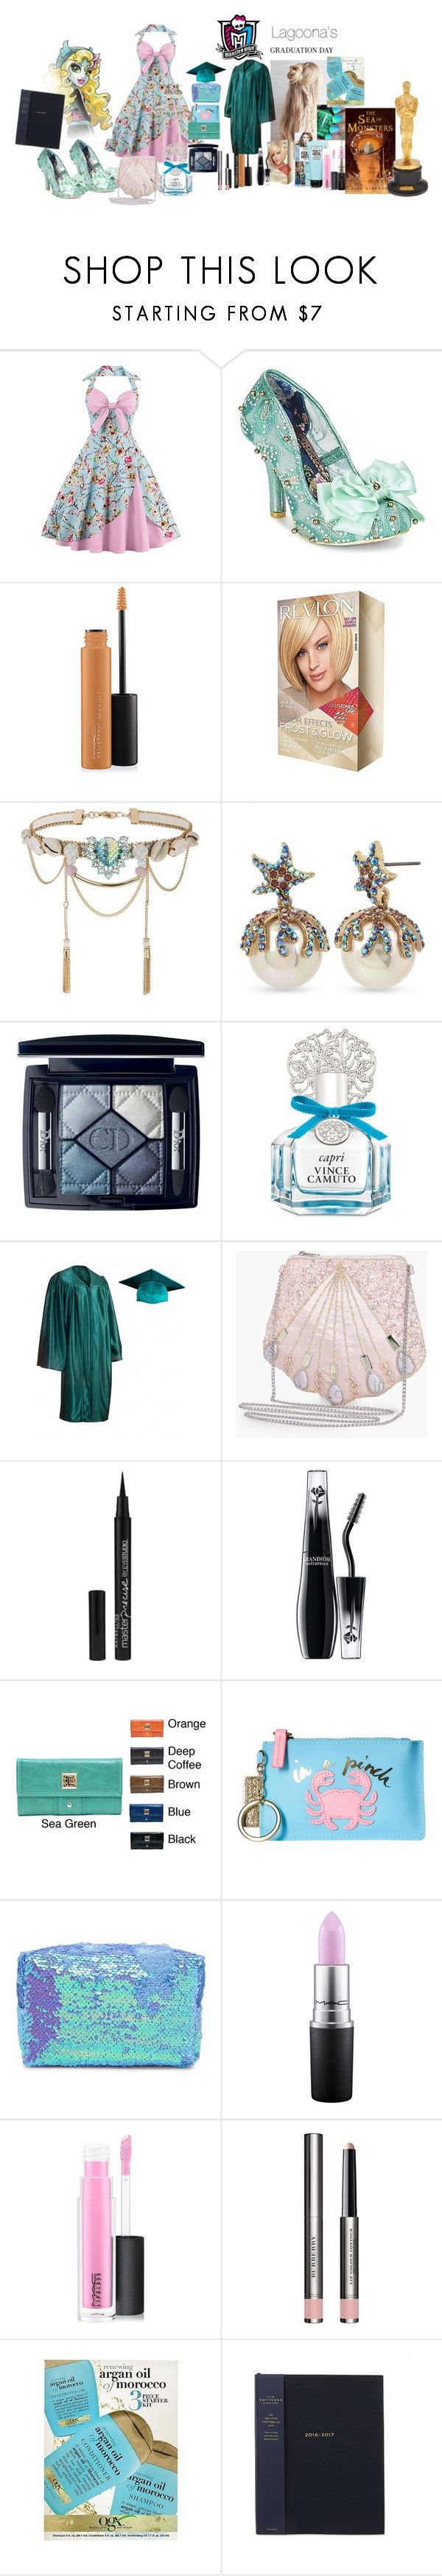 """""""Monster High: Lagoona's Graduation Day"""" by mimi-world on Polyvore featuring Irregular Choice, MAC Cosmetics, Miss Selfridge, Betsey Johnson, Christian Dior, Vince Camuto, Boohoo, Maybelline, Lancôme and OPI"""